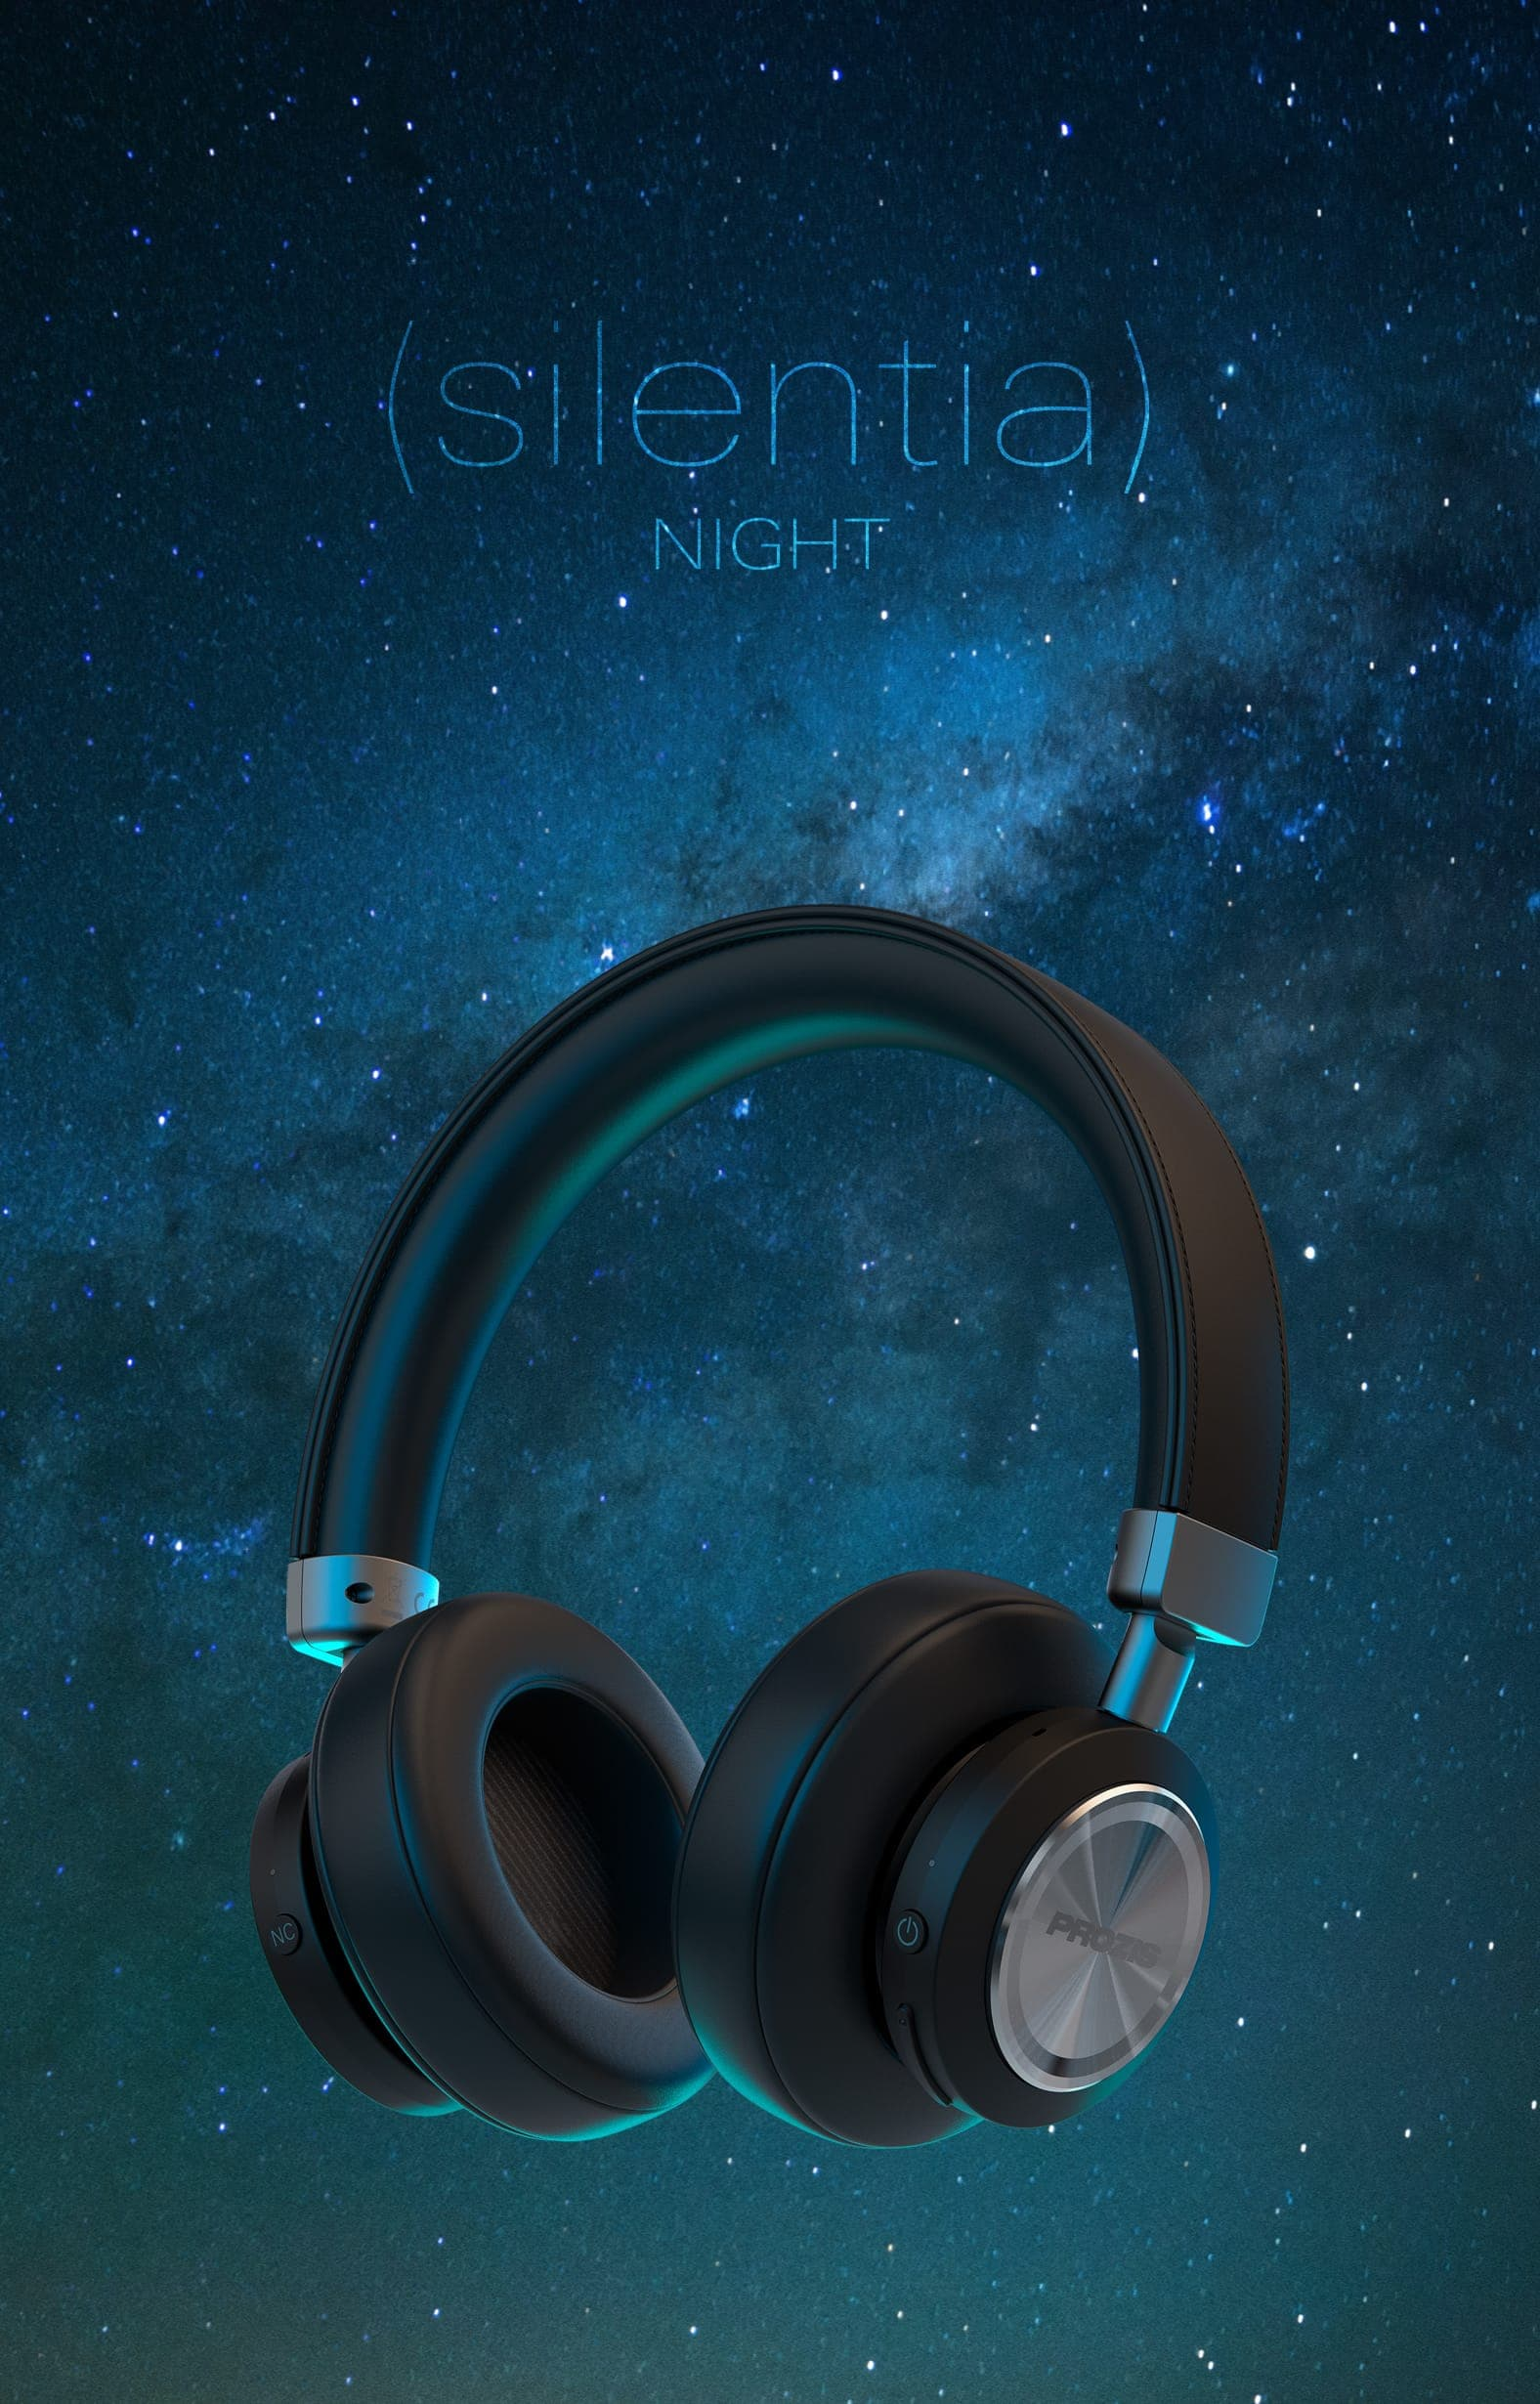 Silentia Night - Wireless Noise Cancelling Headphones